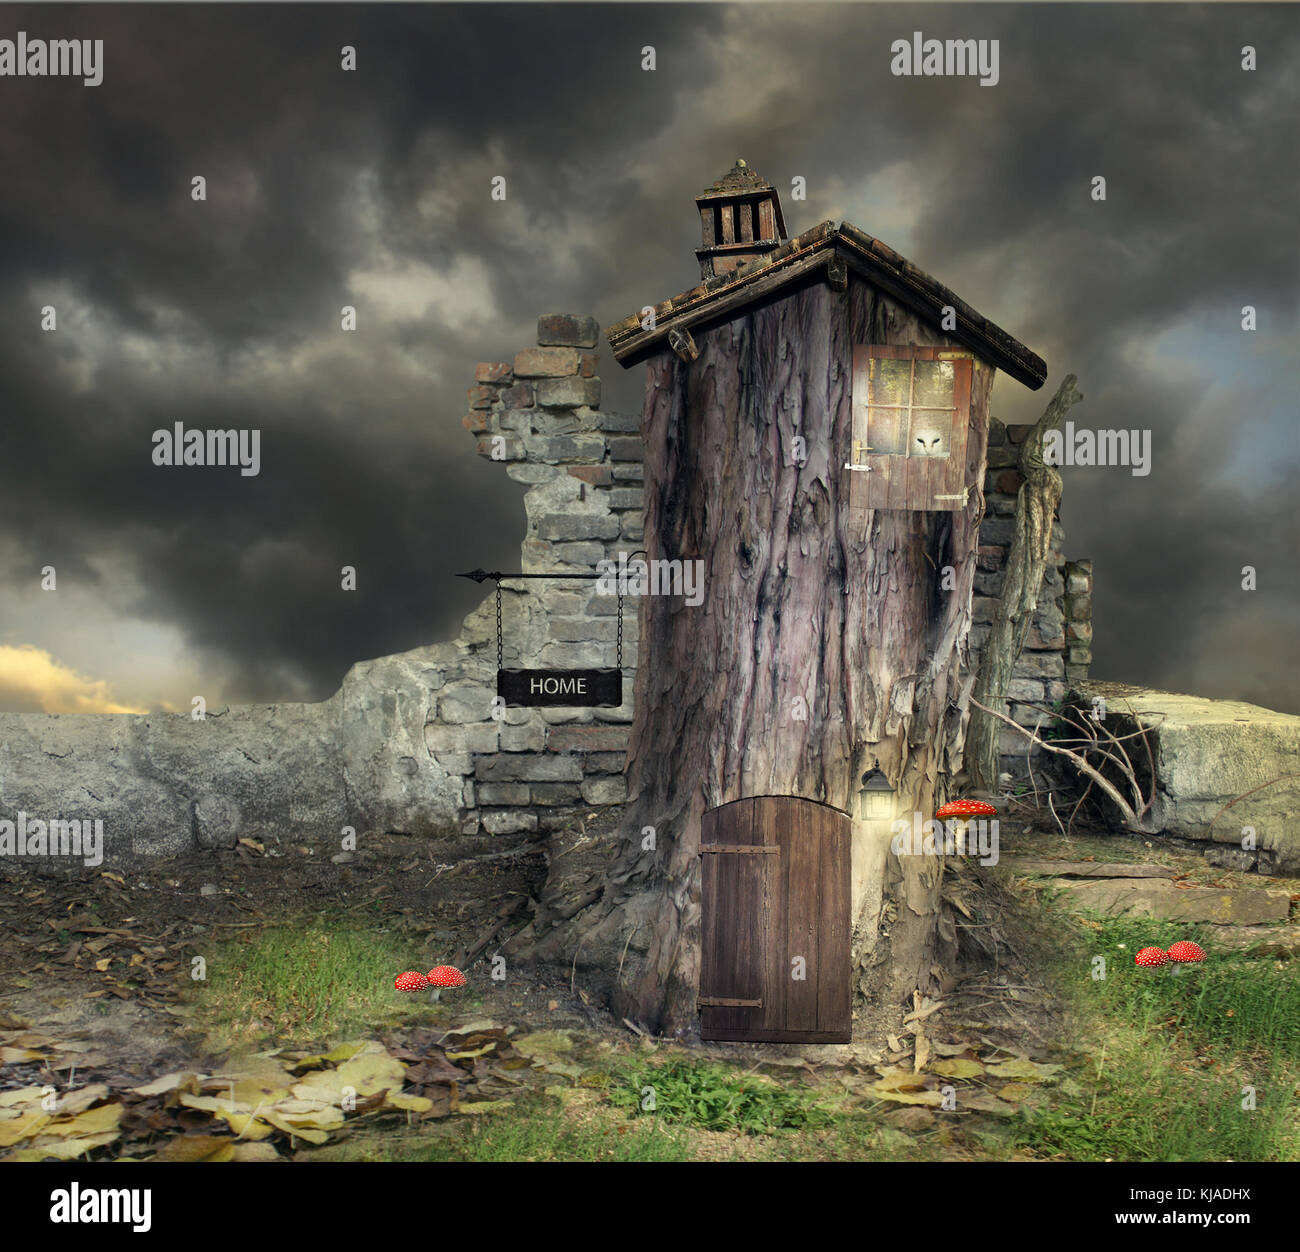 Fantasy landscape with a tree with door window and roof like a house with many details in a magical atmosphere - Stock Image